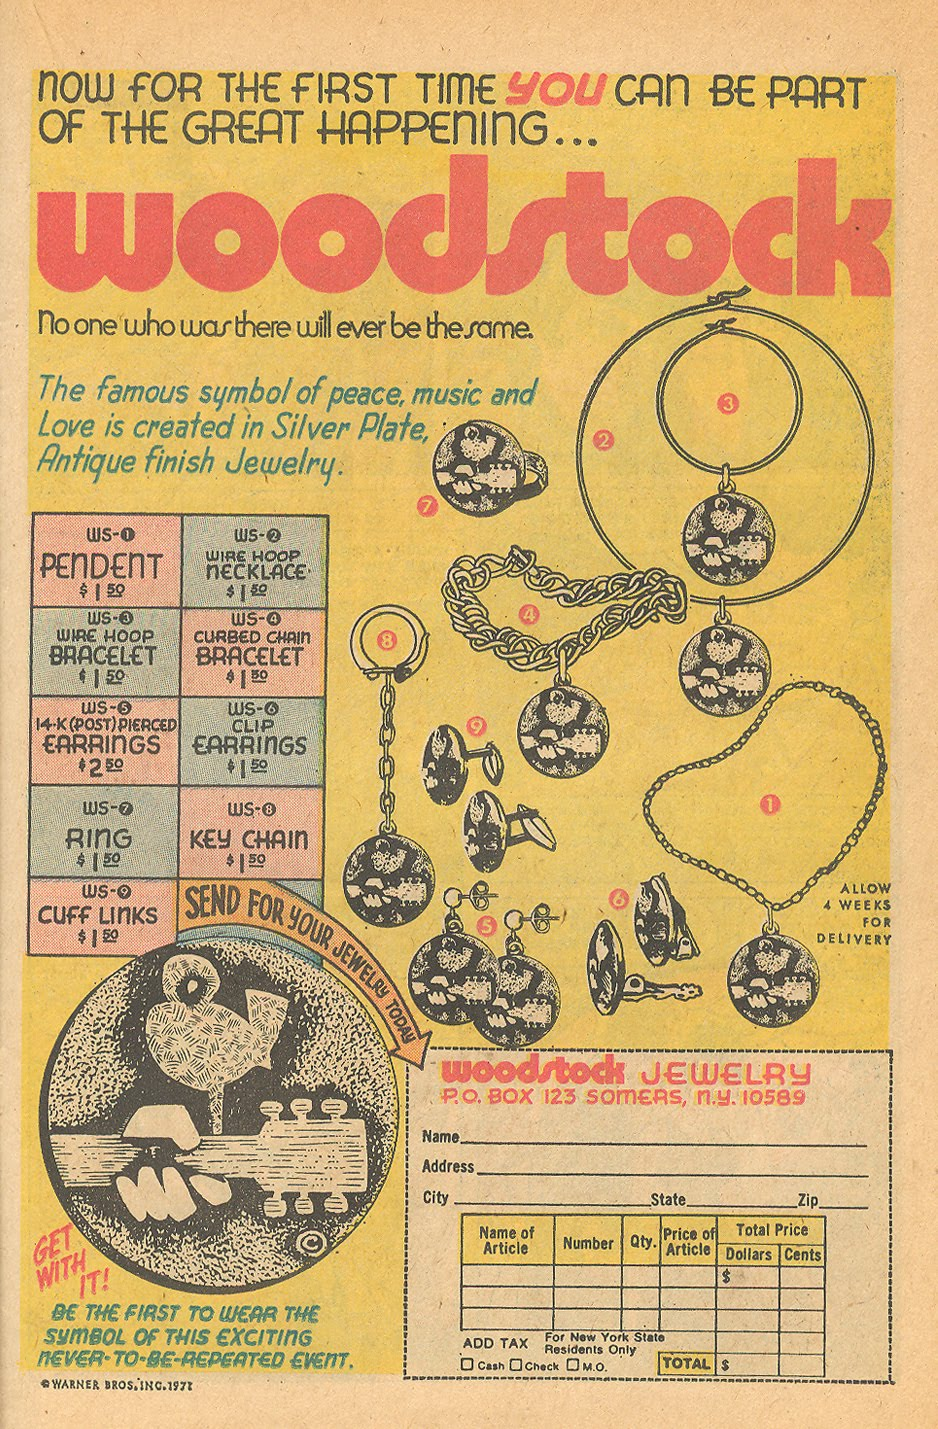 Woodstock jewelry ad from 1970s